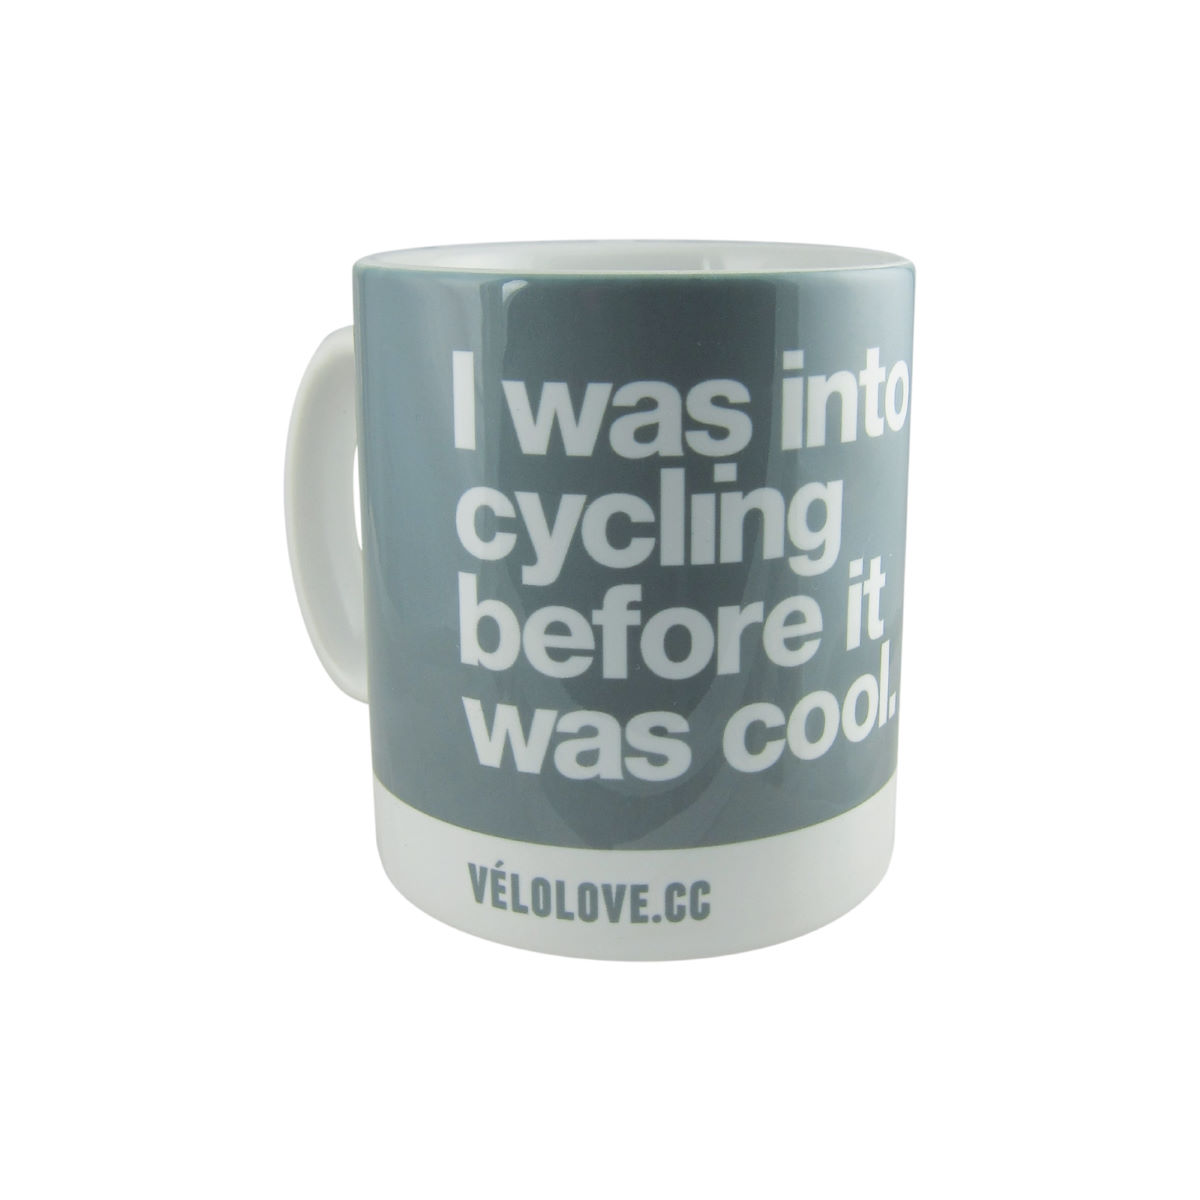 Image of Tasse Velolove I was into cycling before it was cool - Taille unique